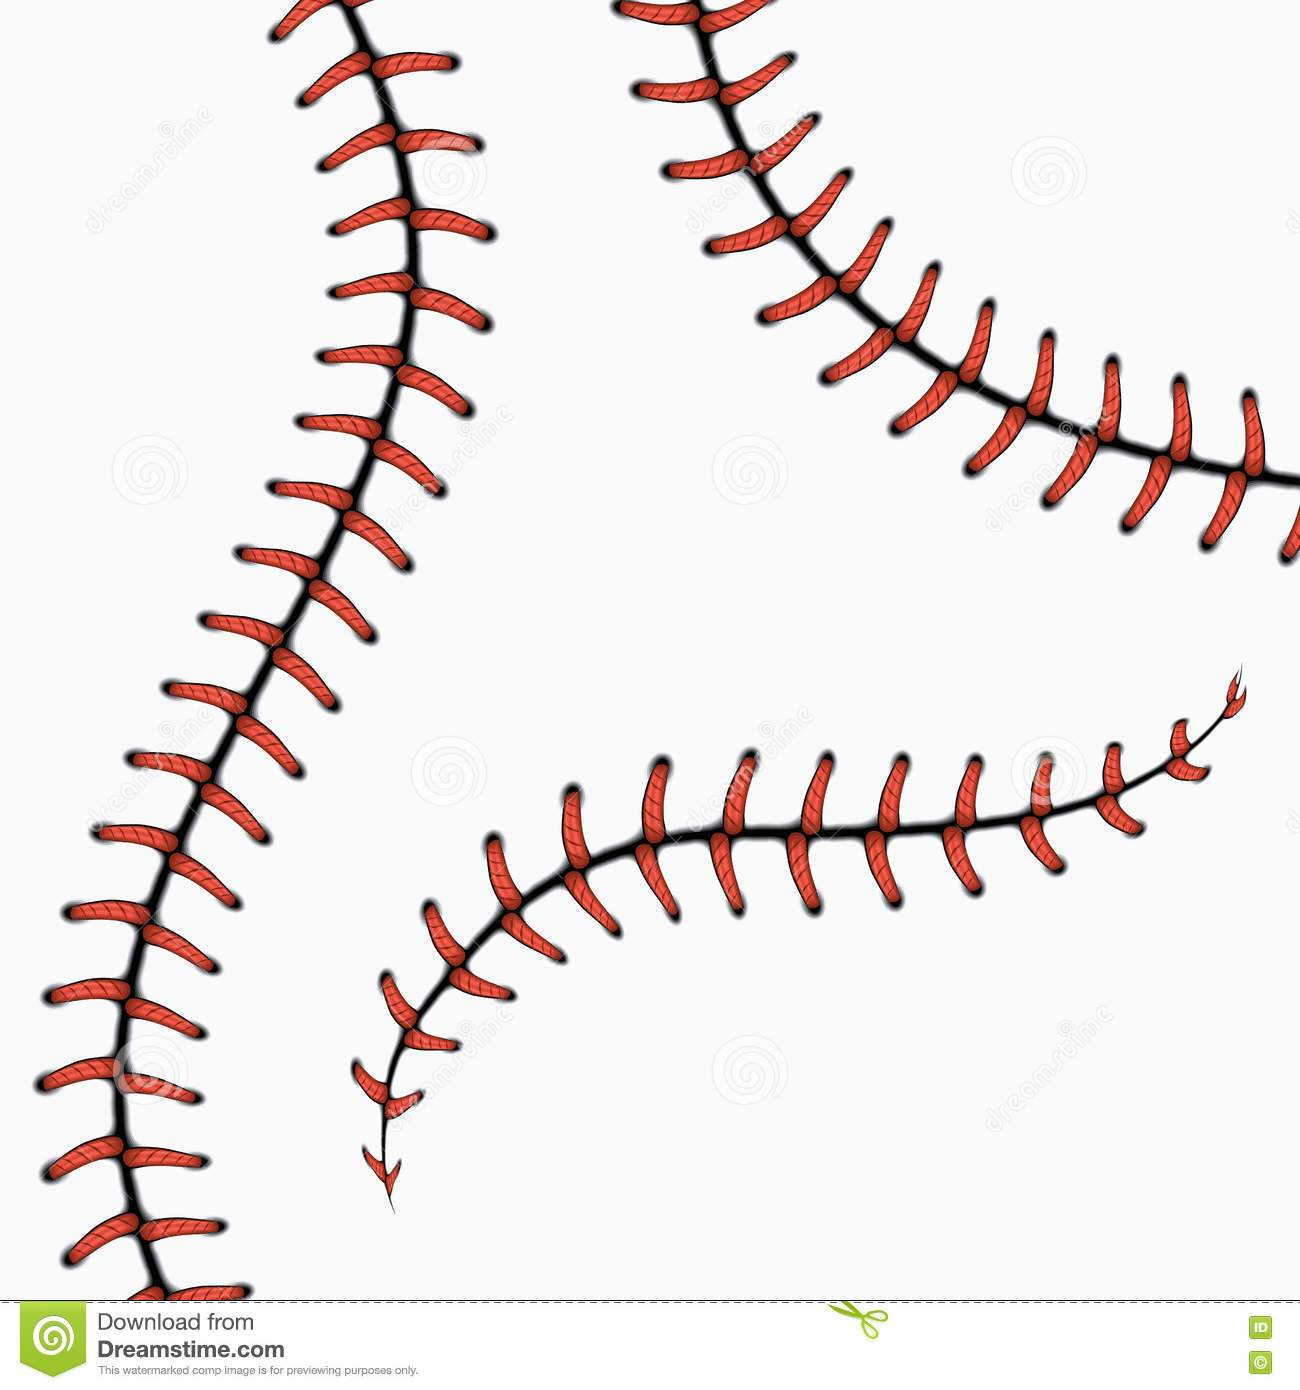 Softball threads clipart 1 » Clipart Portal image black and white library